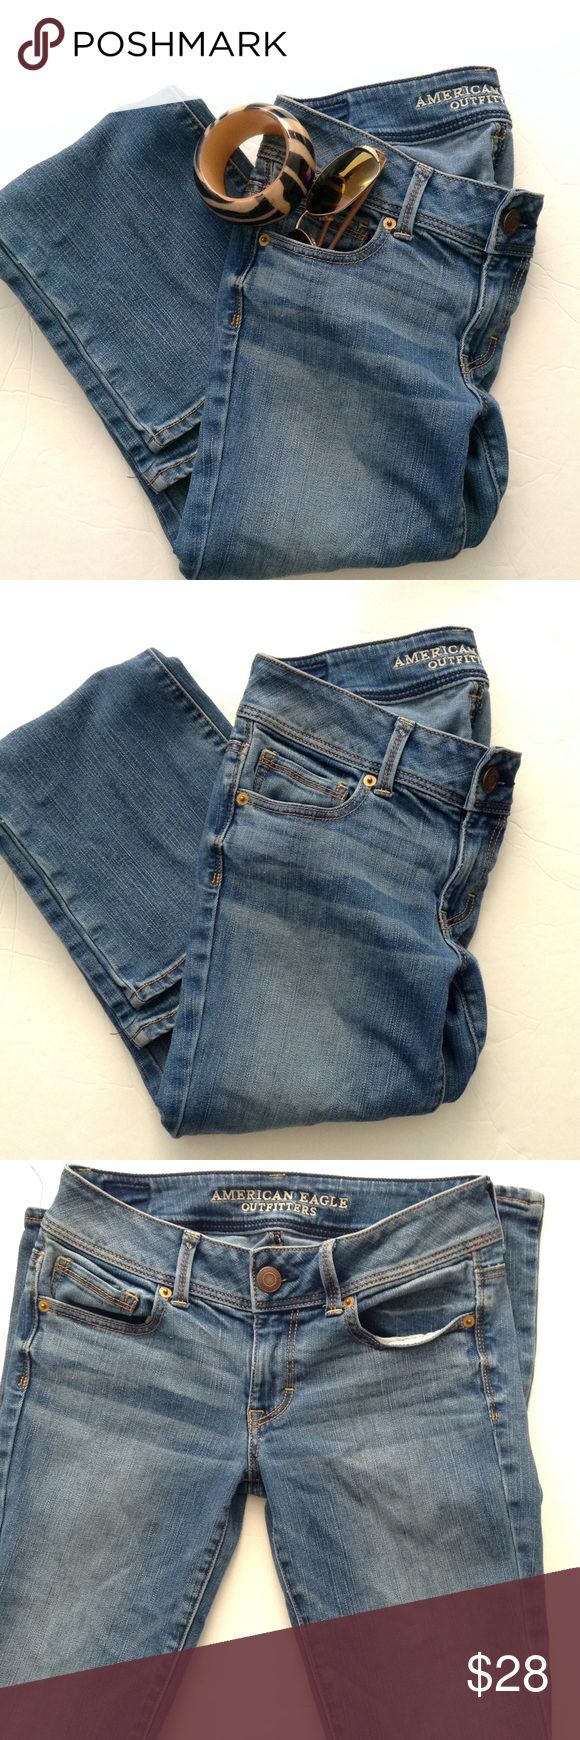 AEO Denim X KICK BOOT JEANS EUC Size 4 American Eagle Outfitters Denim X KICK BOOT Jeans; Regular; Cotton/Elastane Machine Wash; in great used condition. Size 4. ☘ Please read closet policies before purchase☘ American Eagle Outfitters Jeans Boot Cut